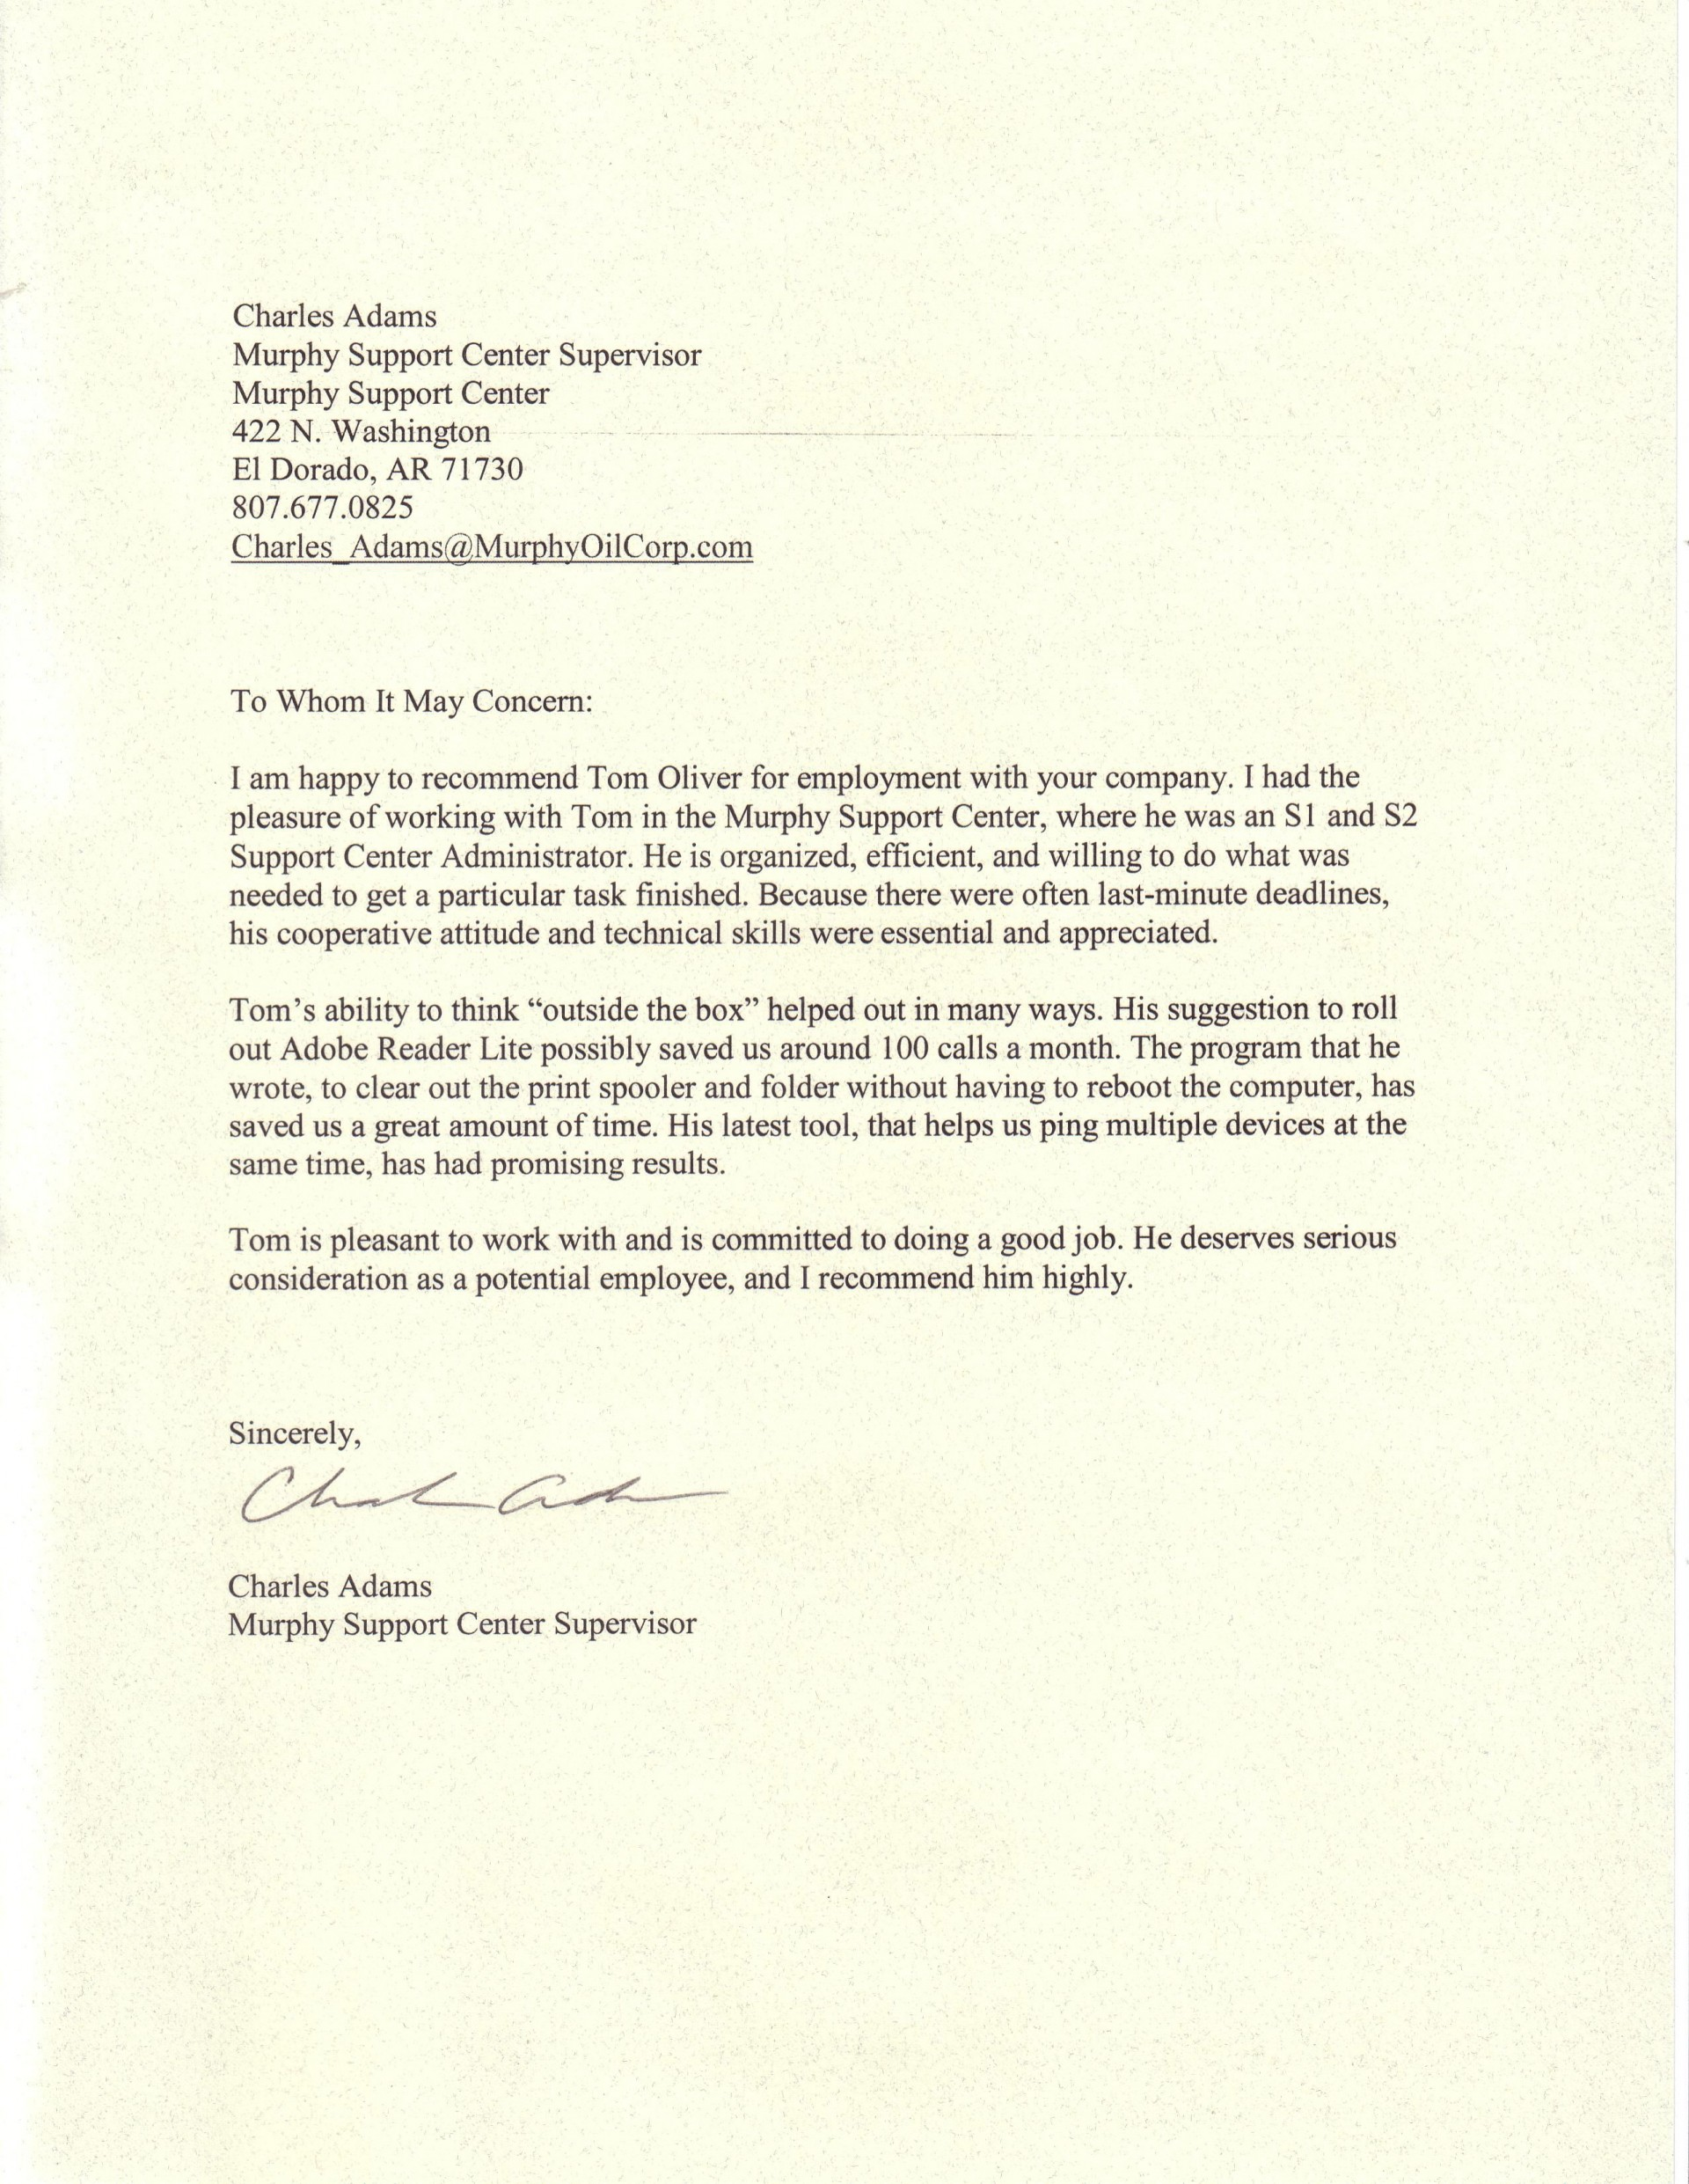 002 Excellent Professional Reference Letter Template Word Highest Clarity 1920